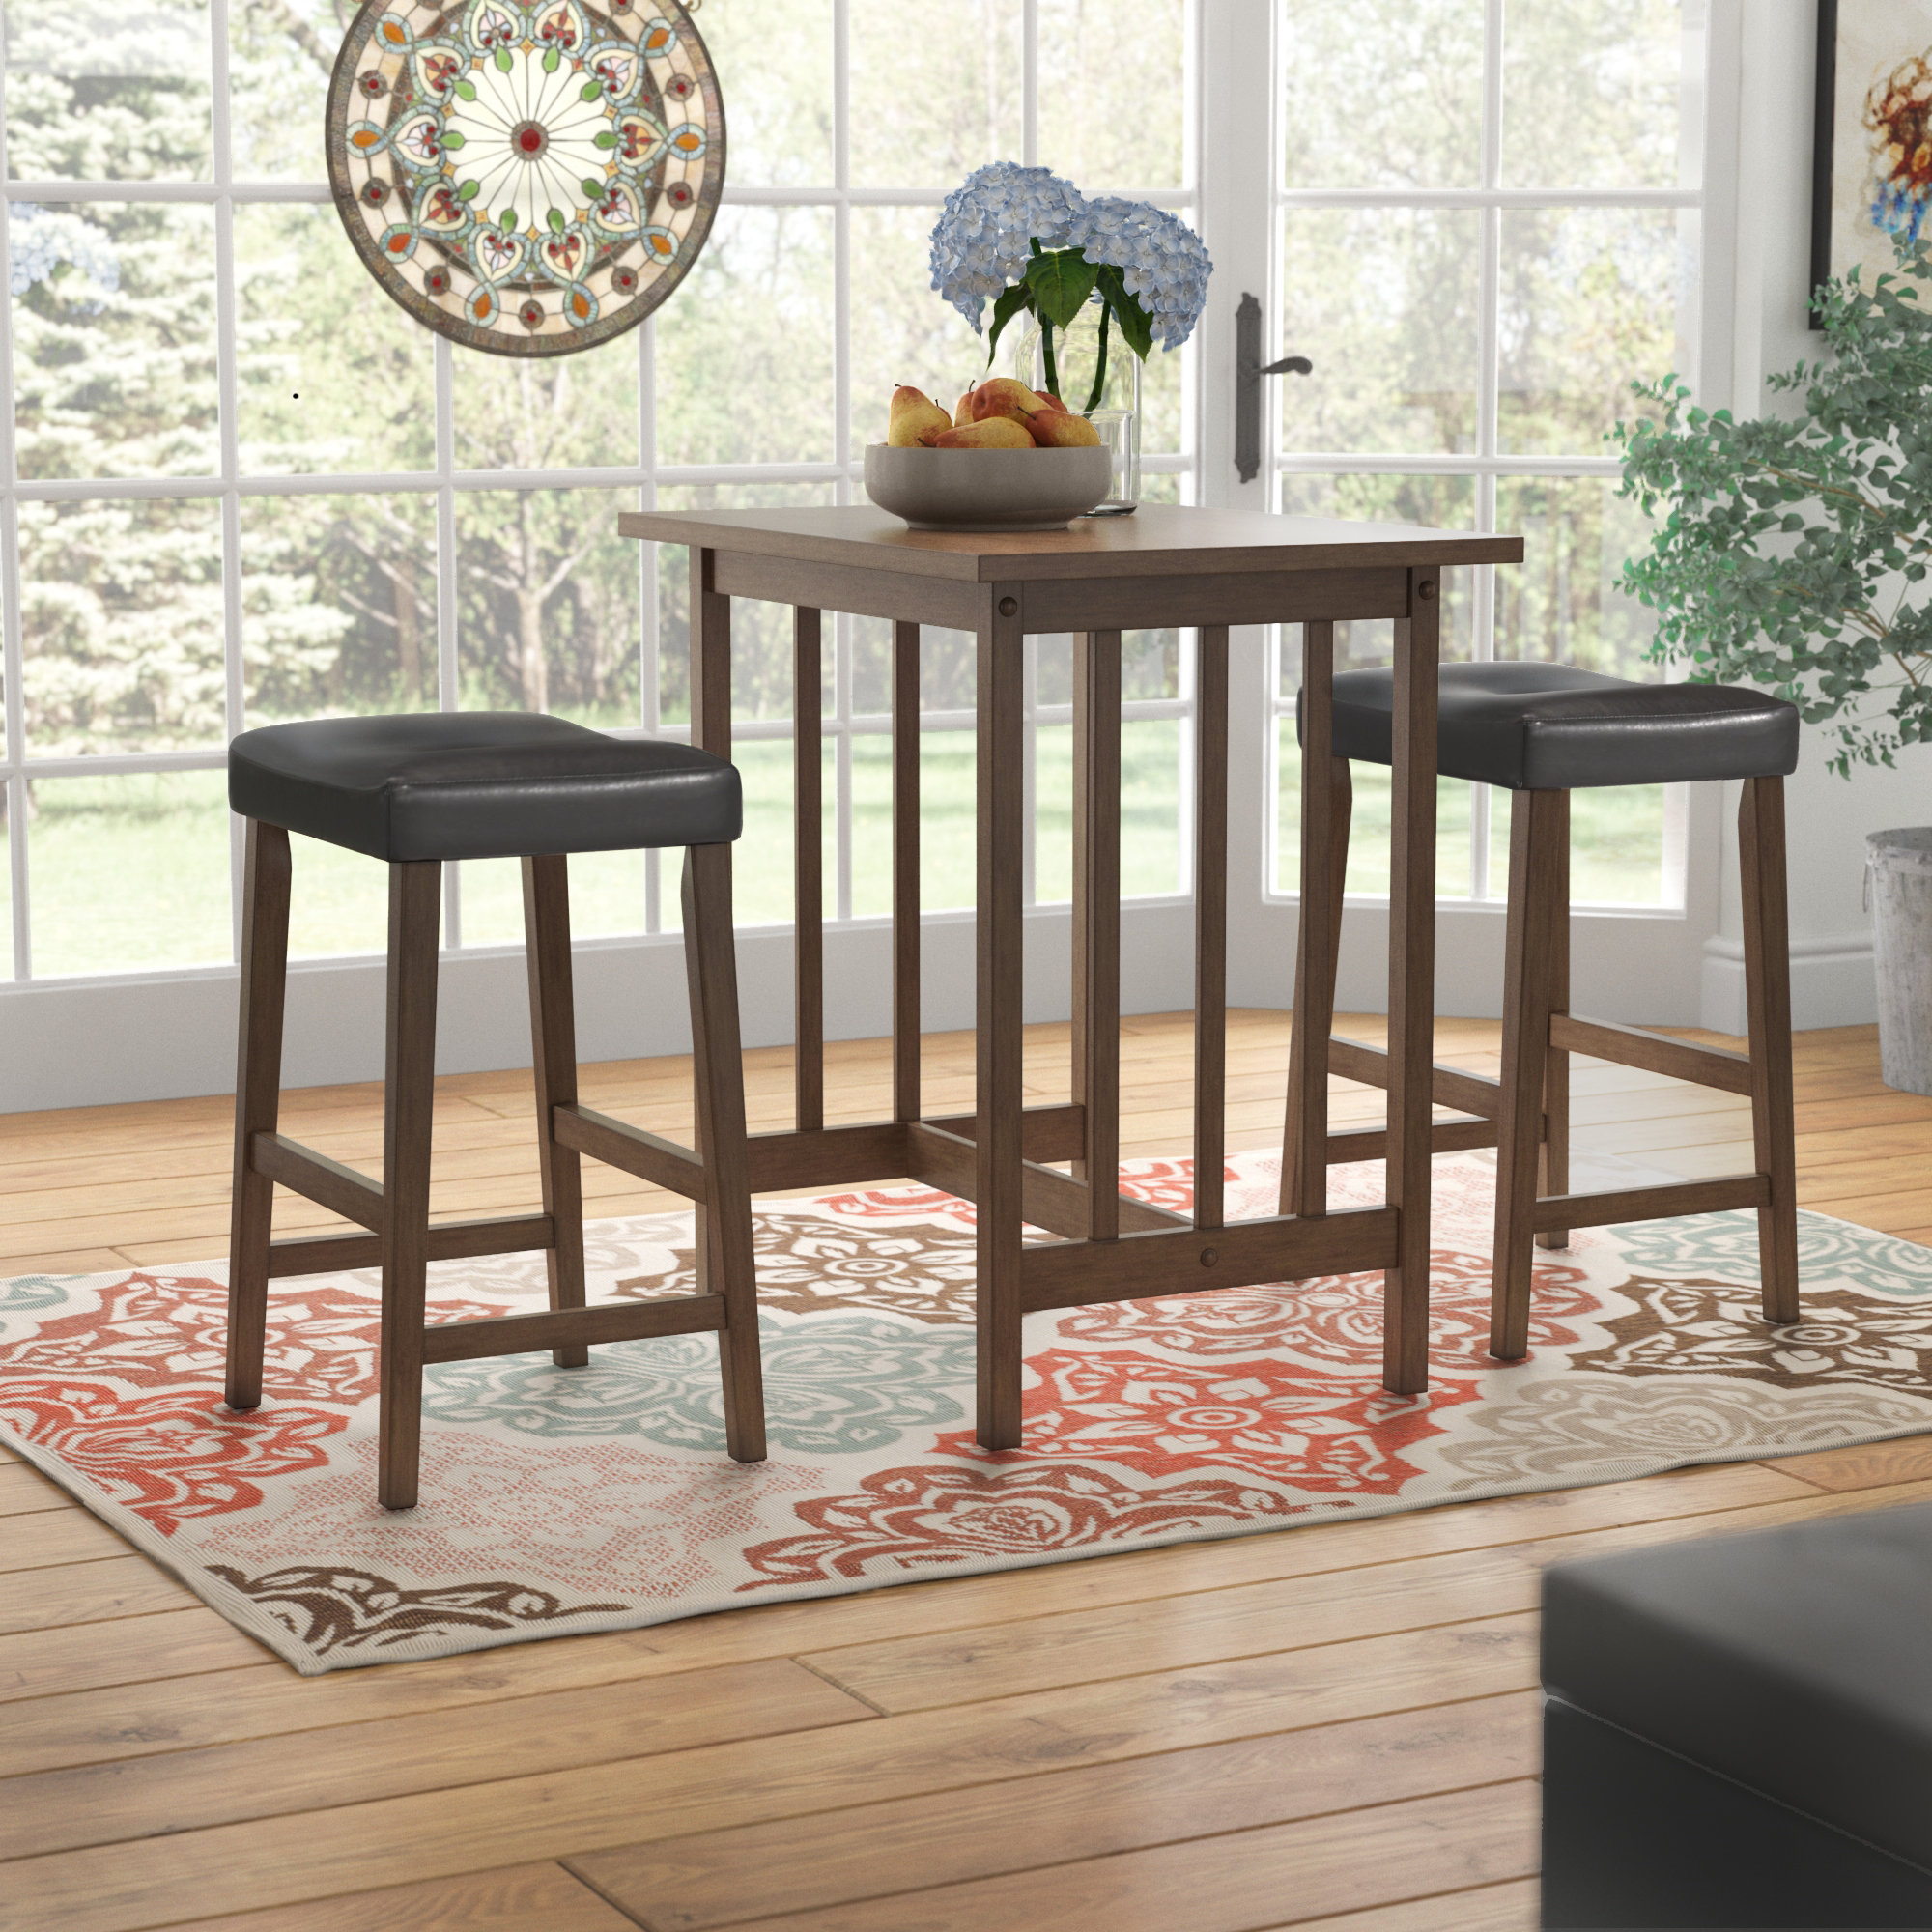 Hood Canal 3 Piece Dining Set Inside Most Up To Date Lonon 3 Piece Dining Sets (Image 8 of 20)